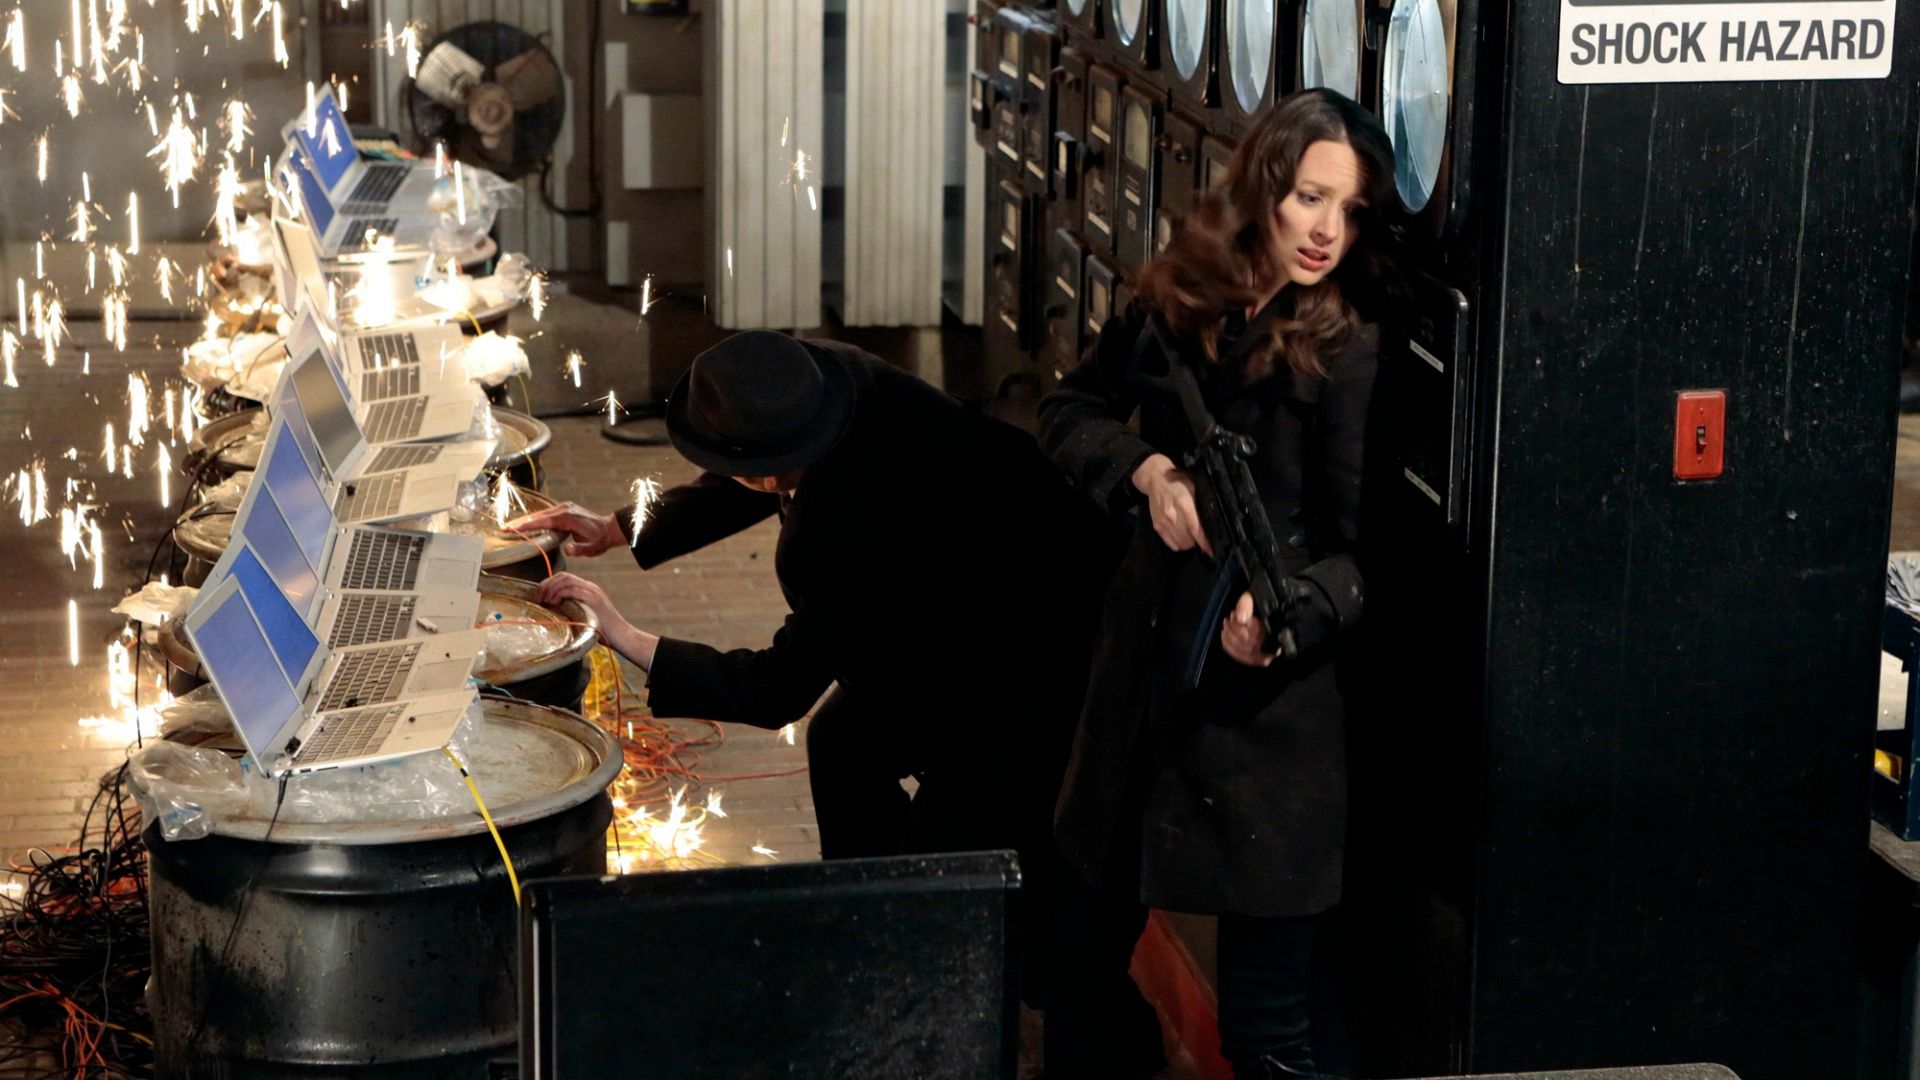 Root pulled out all the stops to protect herself and The Machine.